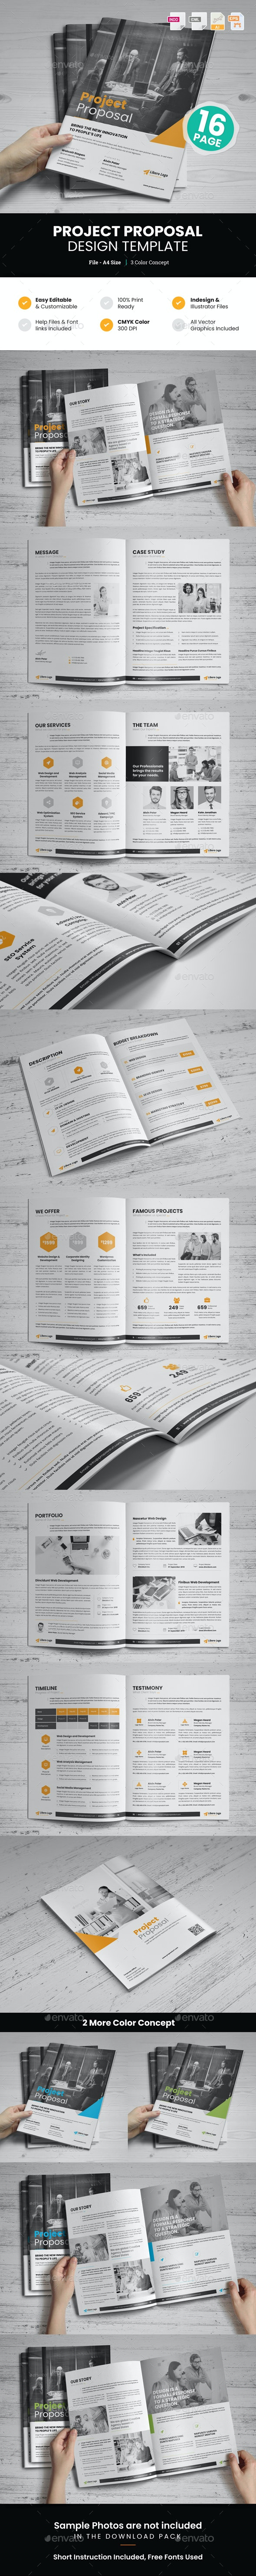 Project Proposal Design v1 - Proposals & Invoices Stationery